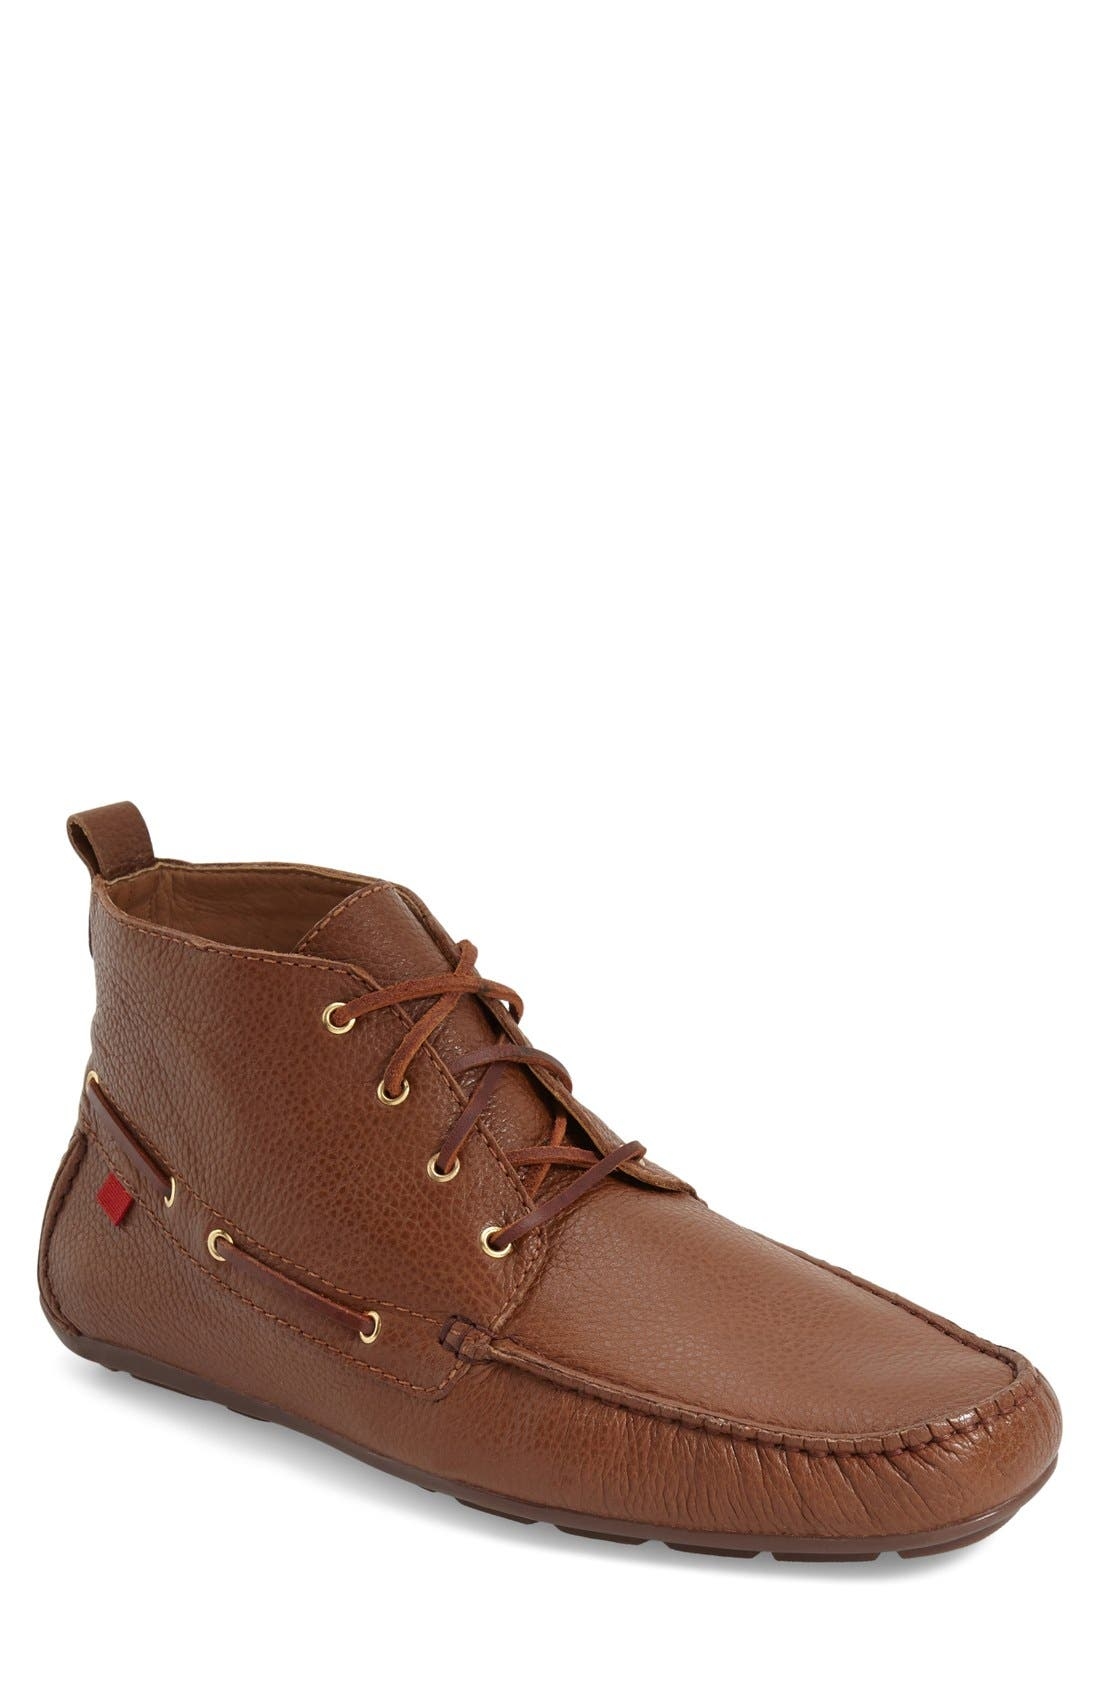 'Soho' Boot,                         Main,                         color, Cognac Leather